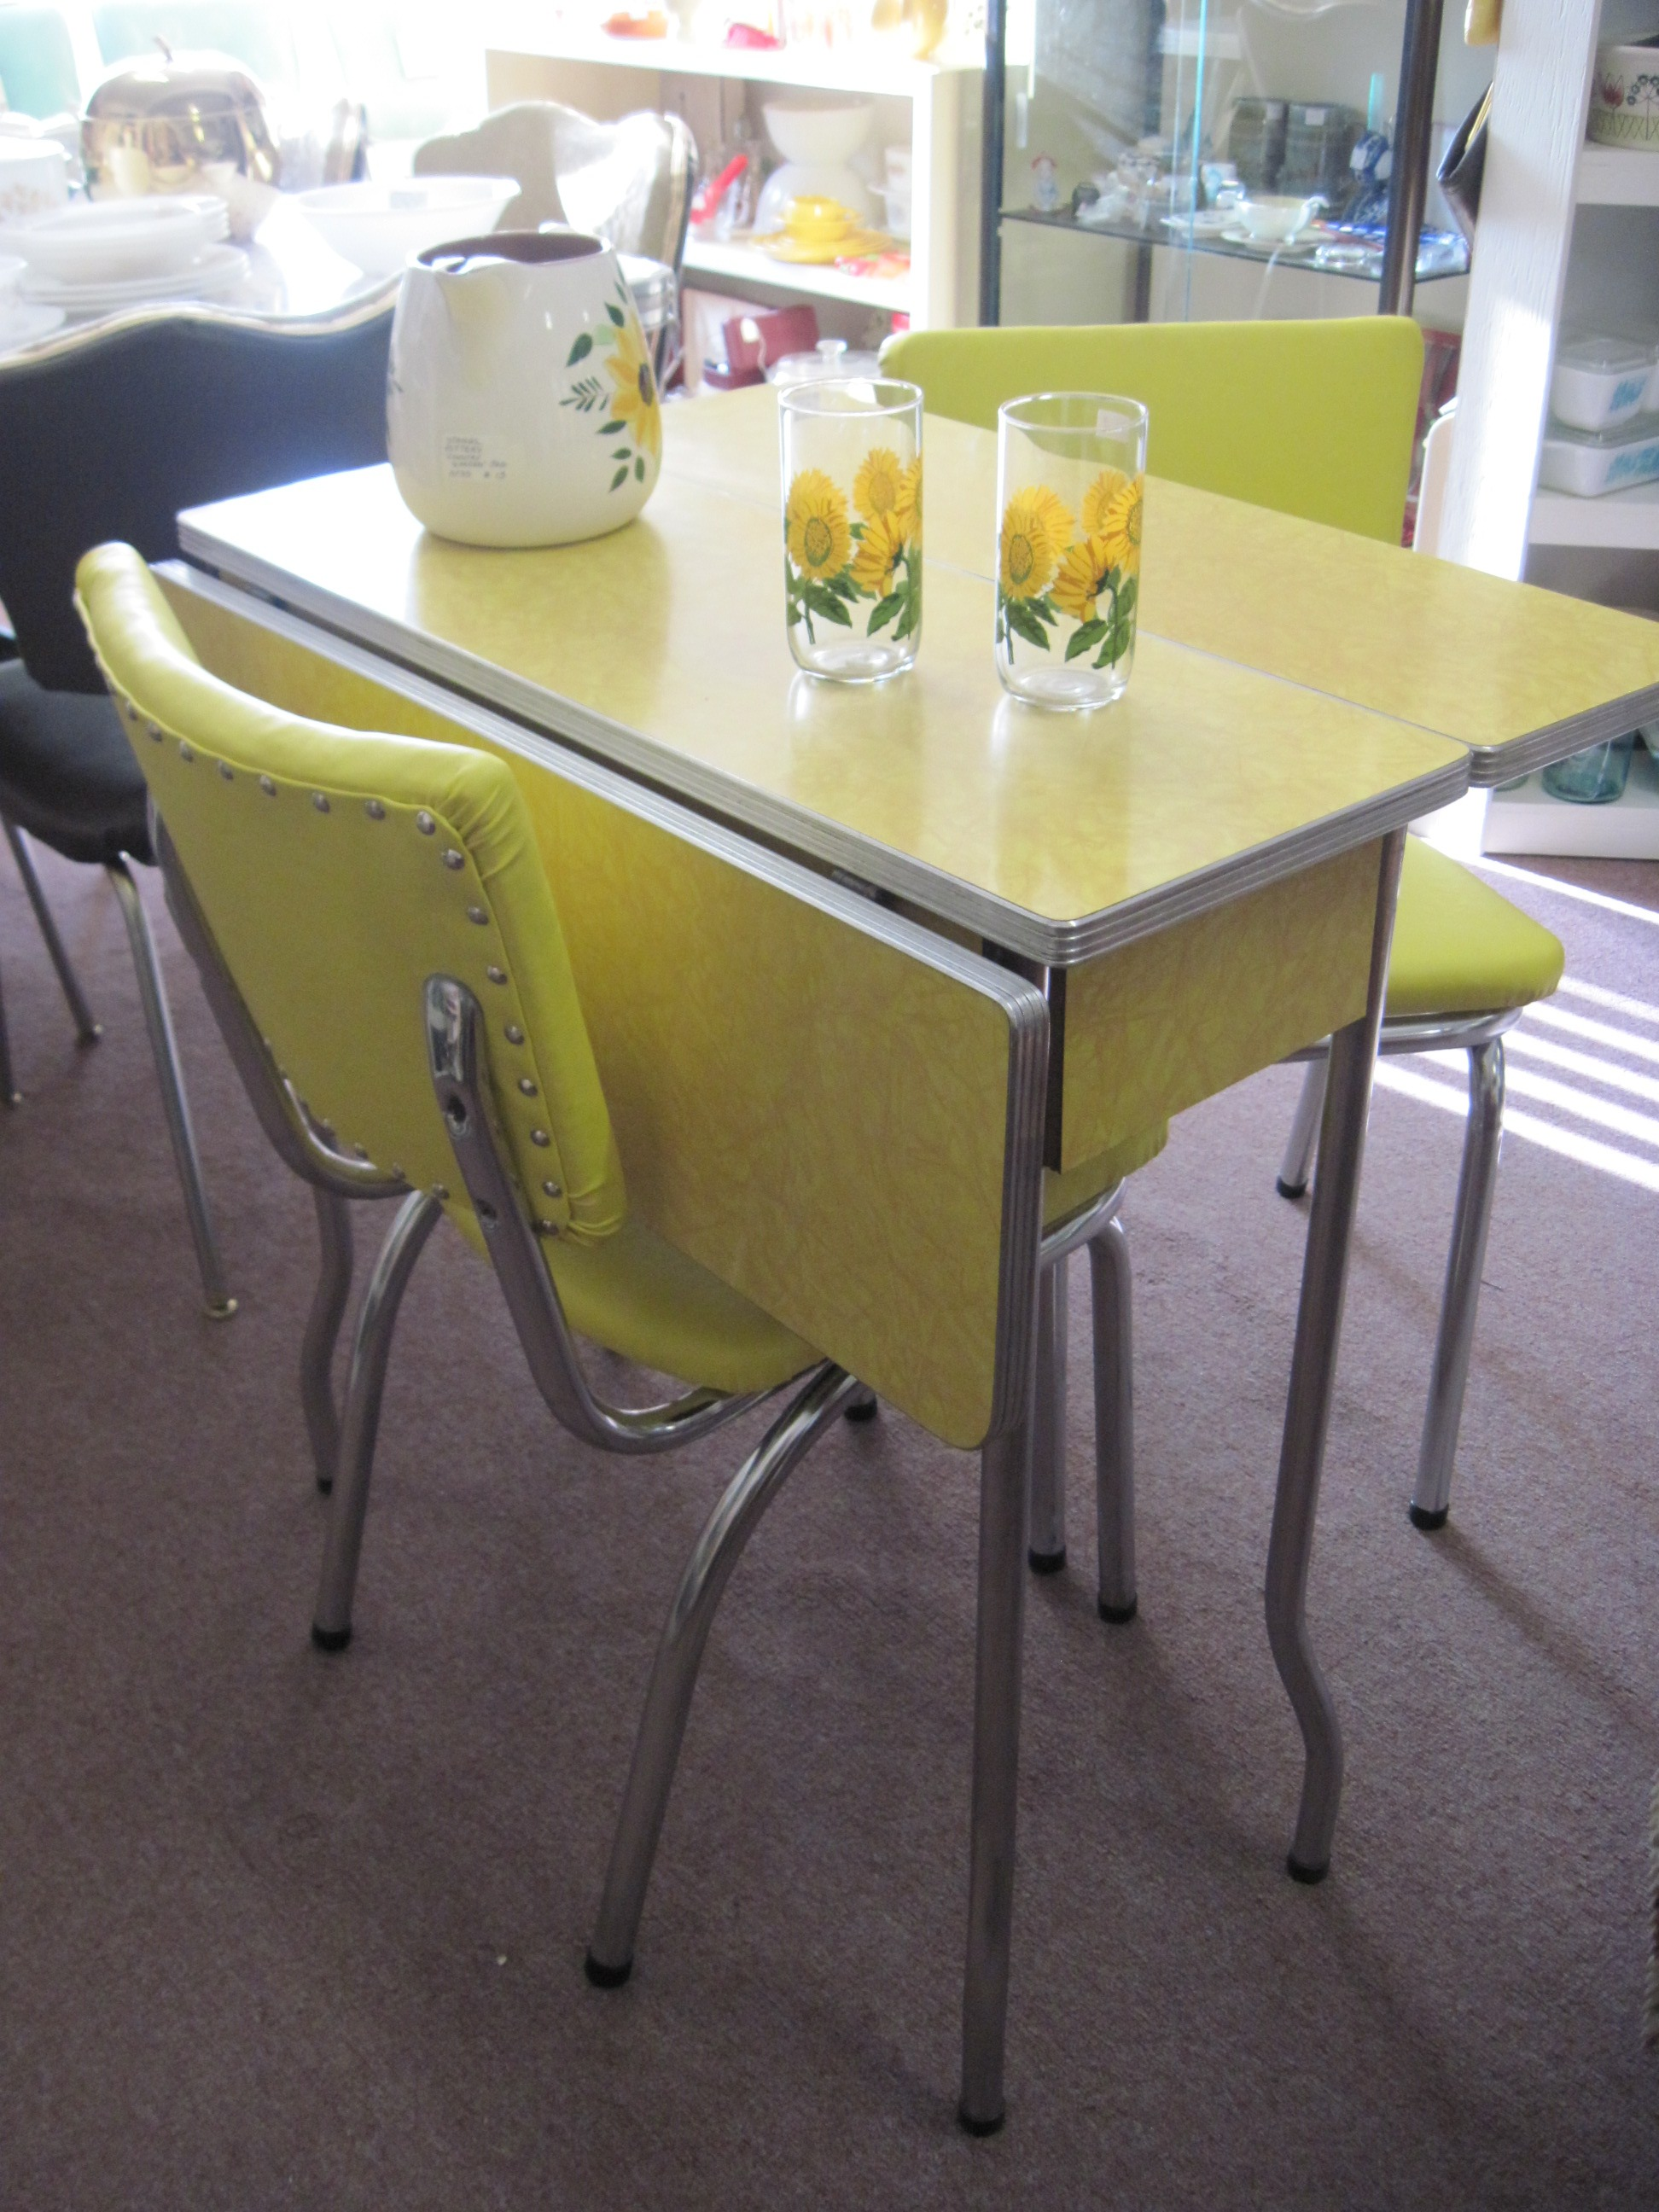 Yellow 1950s Cracked Ice Formica Table And Chairs on coffee tables of the 1950s